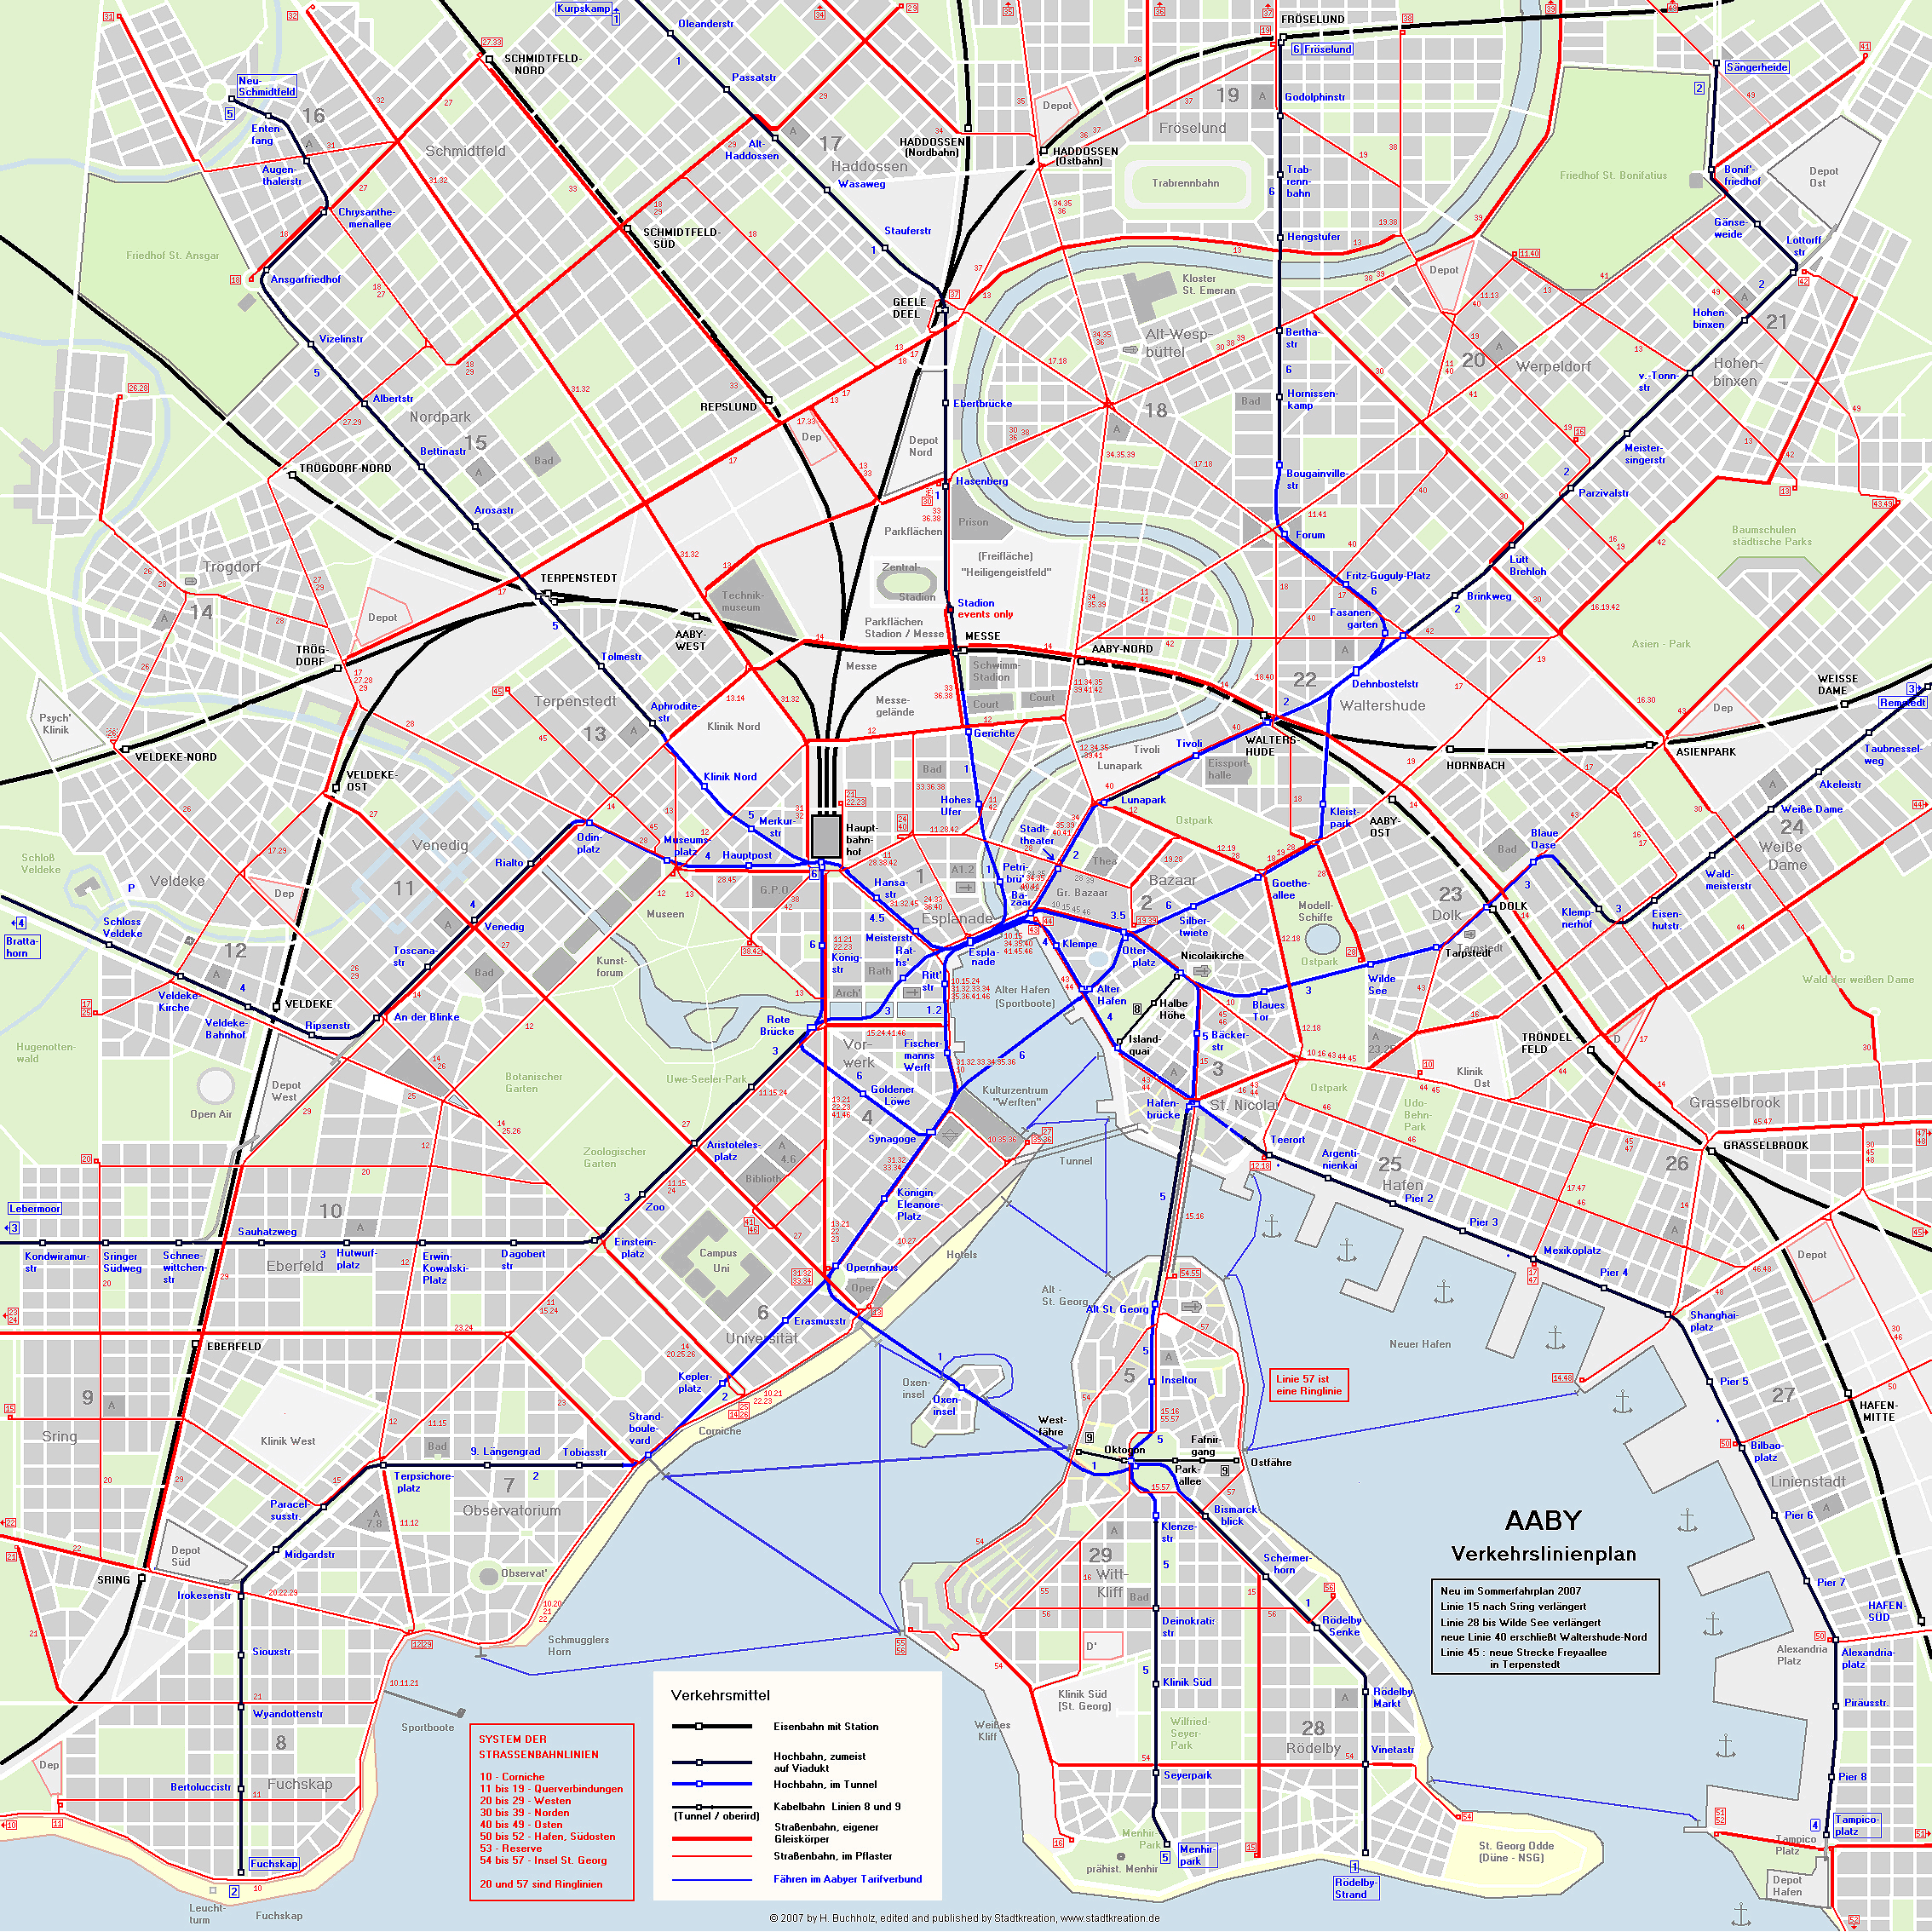 Public transit map of Aaby